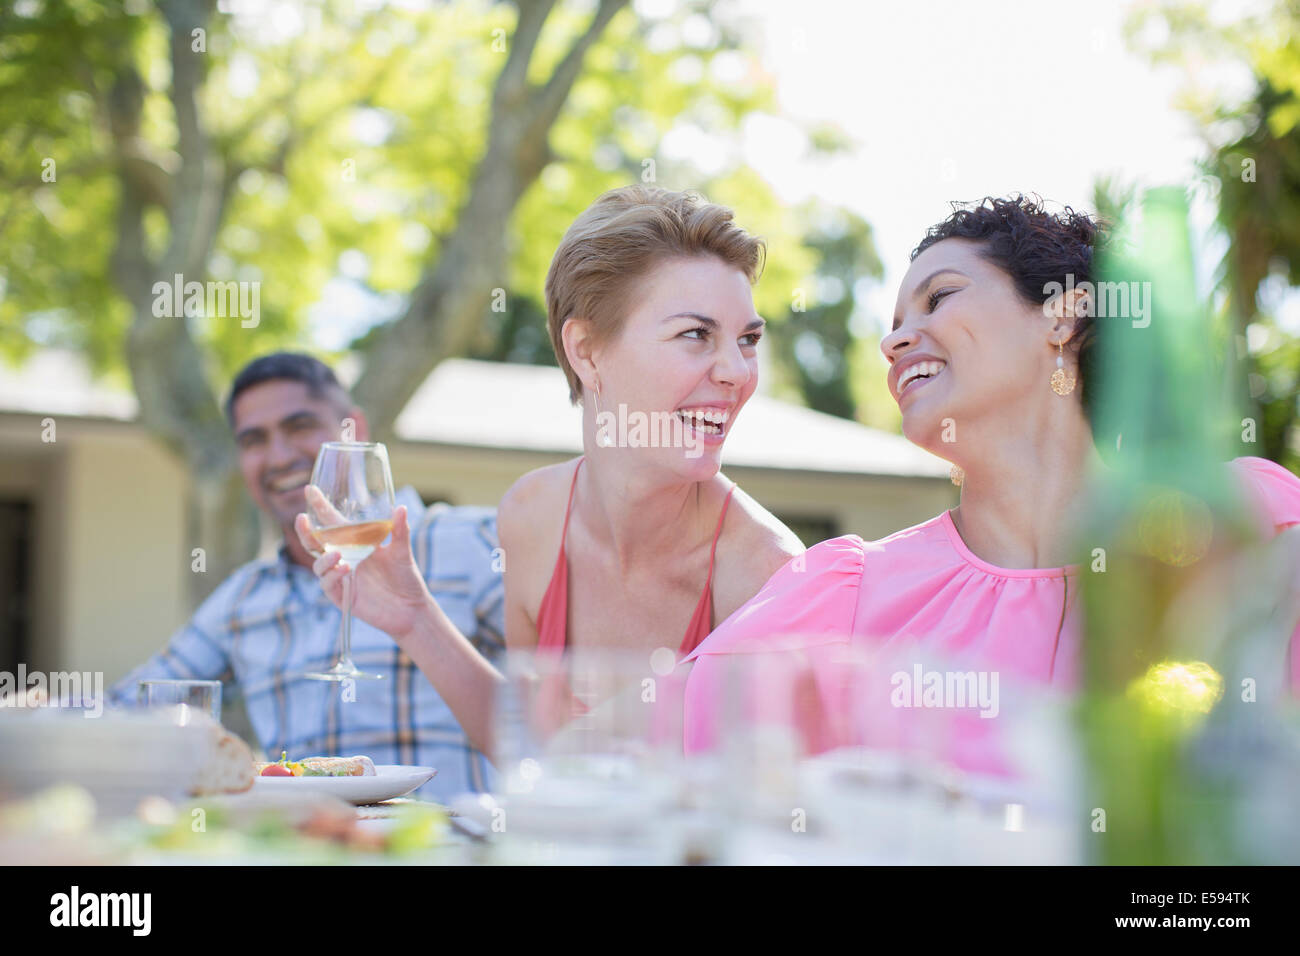 Women talking at table outdoors - Stock Image